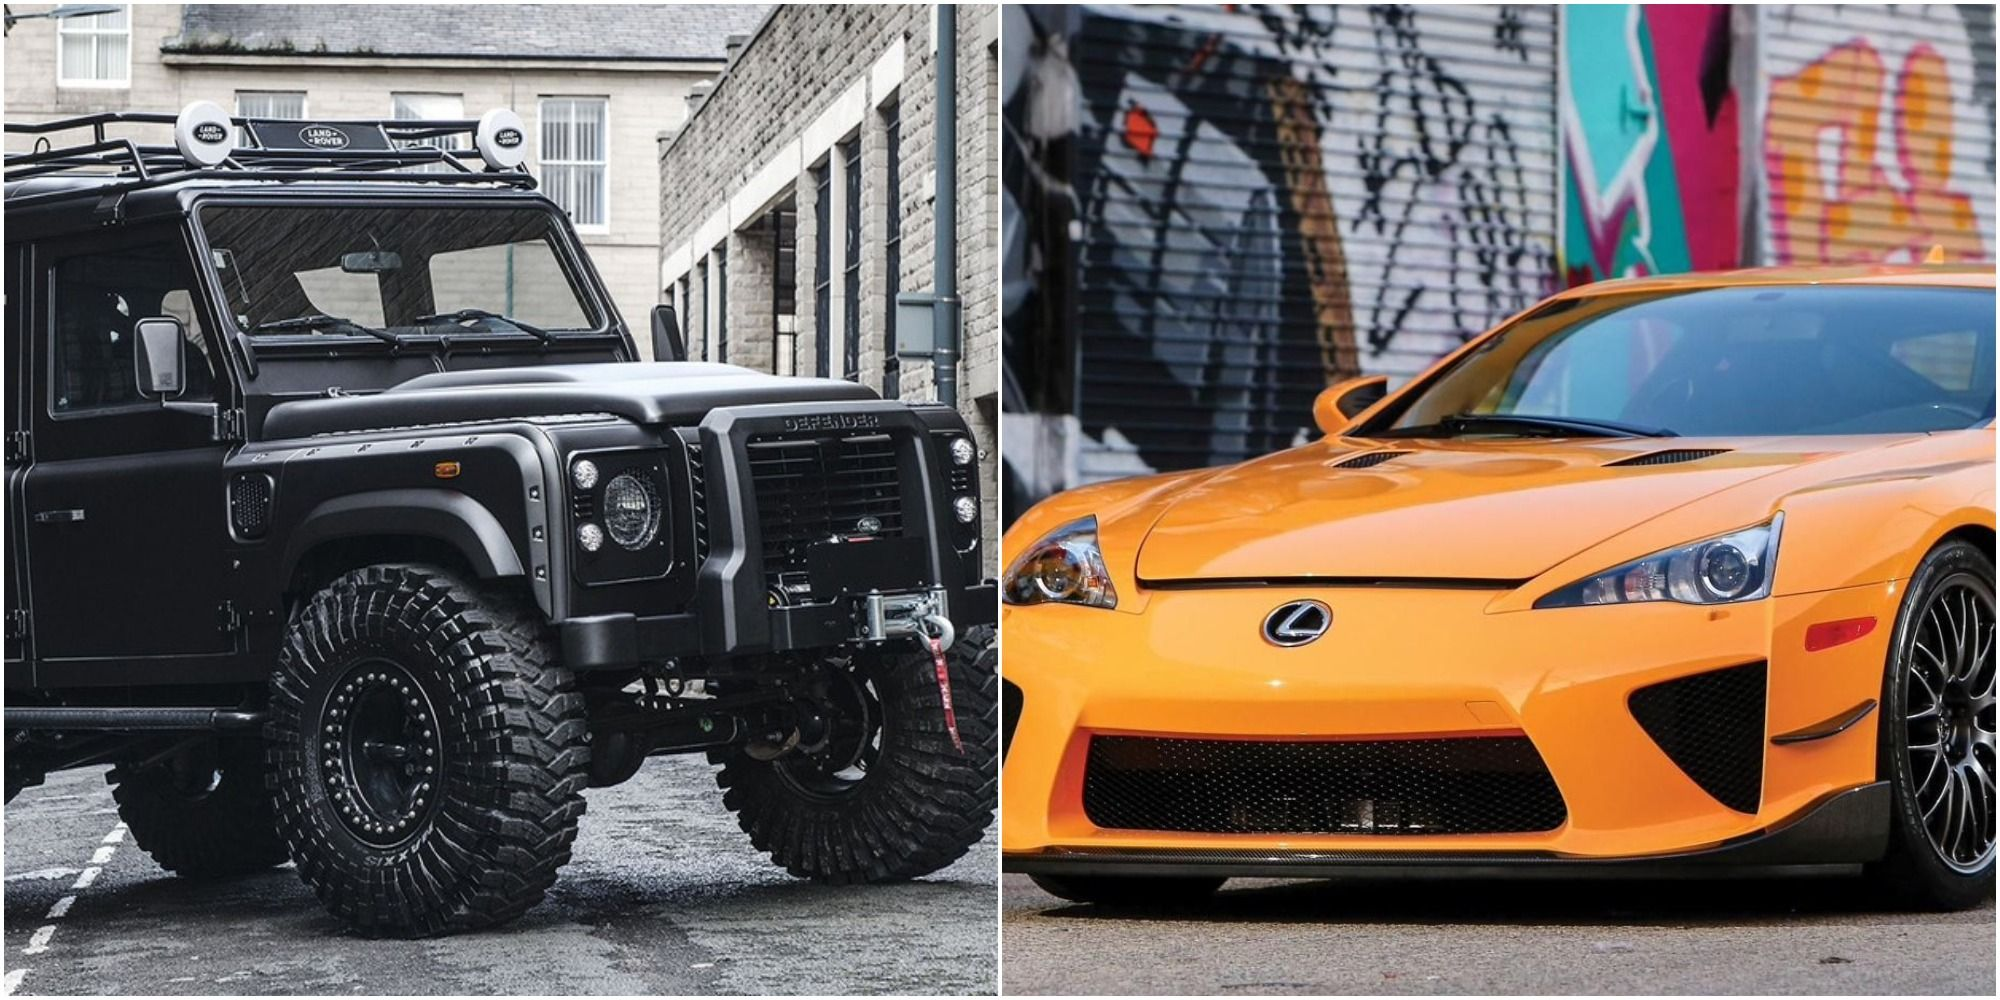 10 Low-Maintenance Cars That'll Make You Look Like A Tycoon